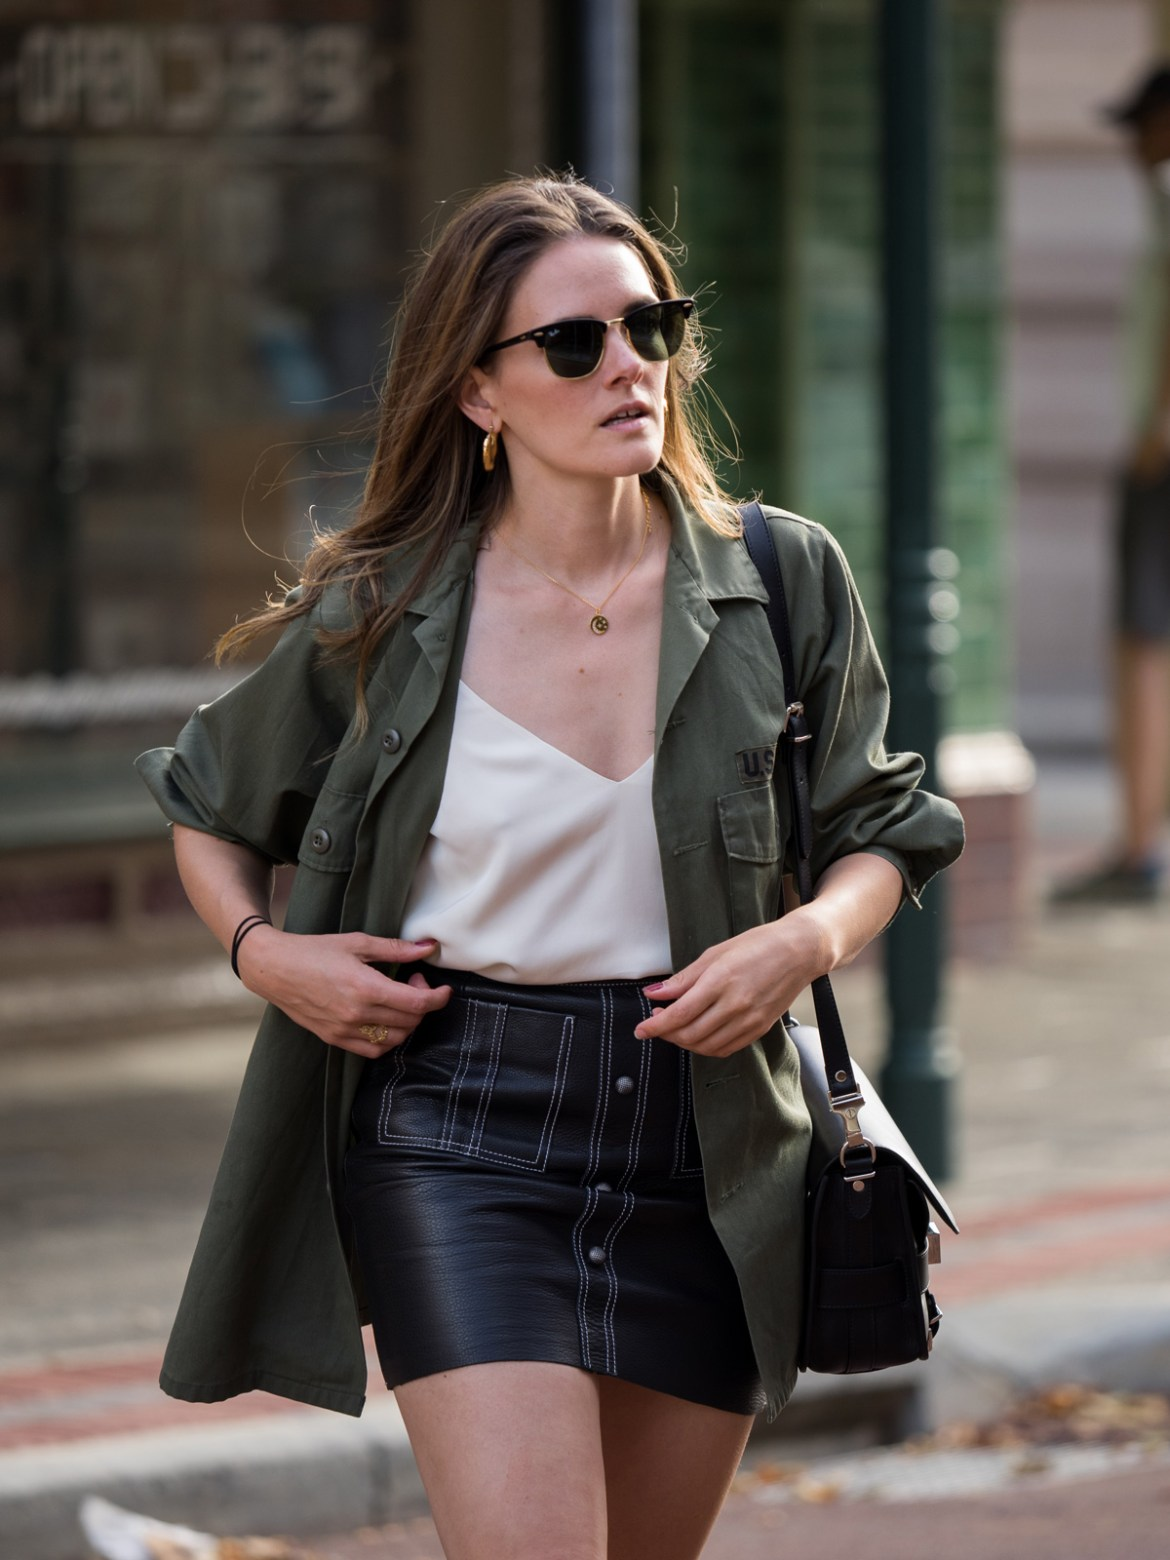 Aje leather mini skirt with army jacket worn by Jenelle Witty of Inspiring Wit fashion blog